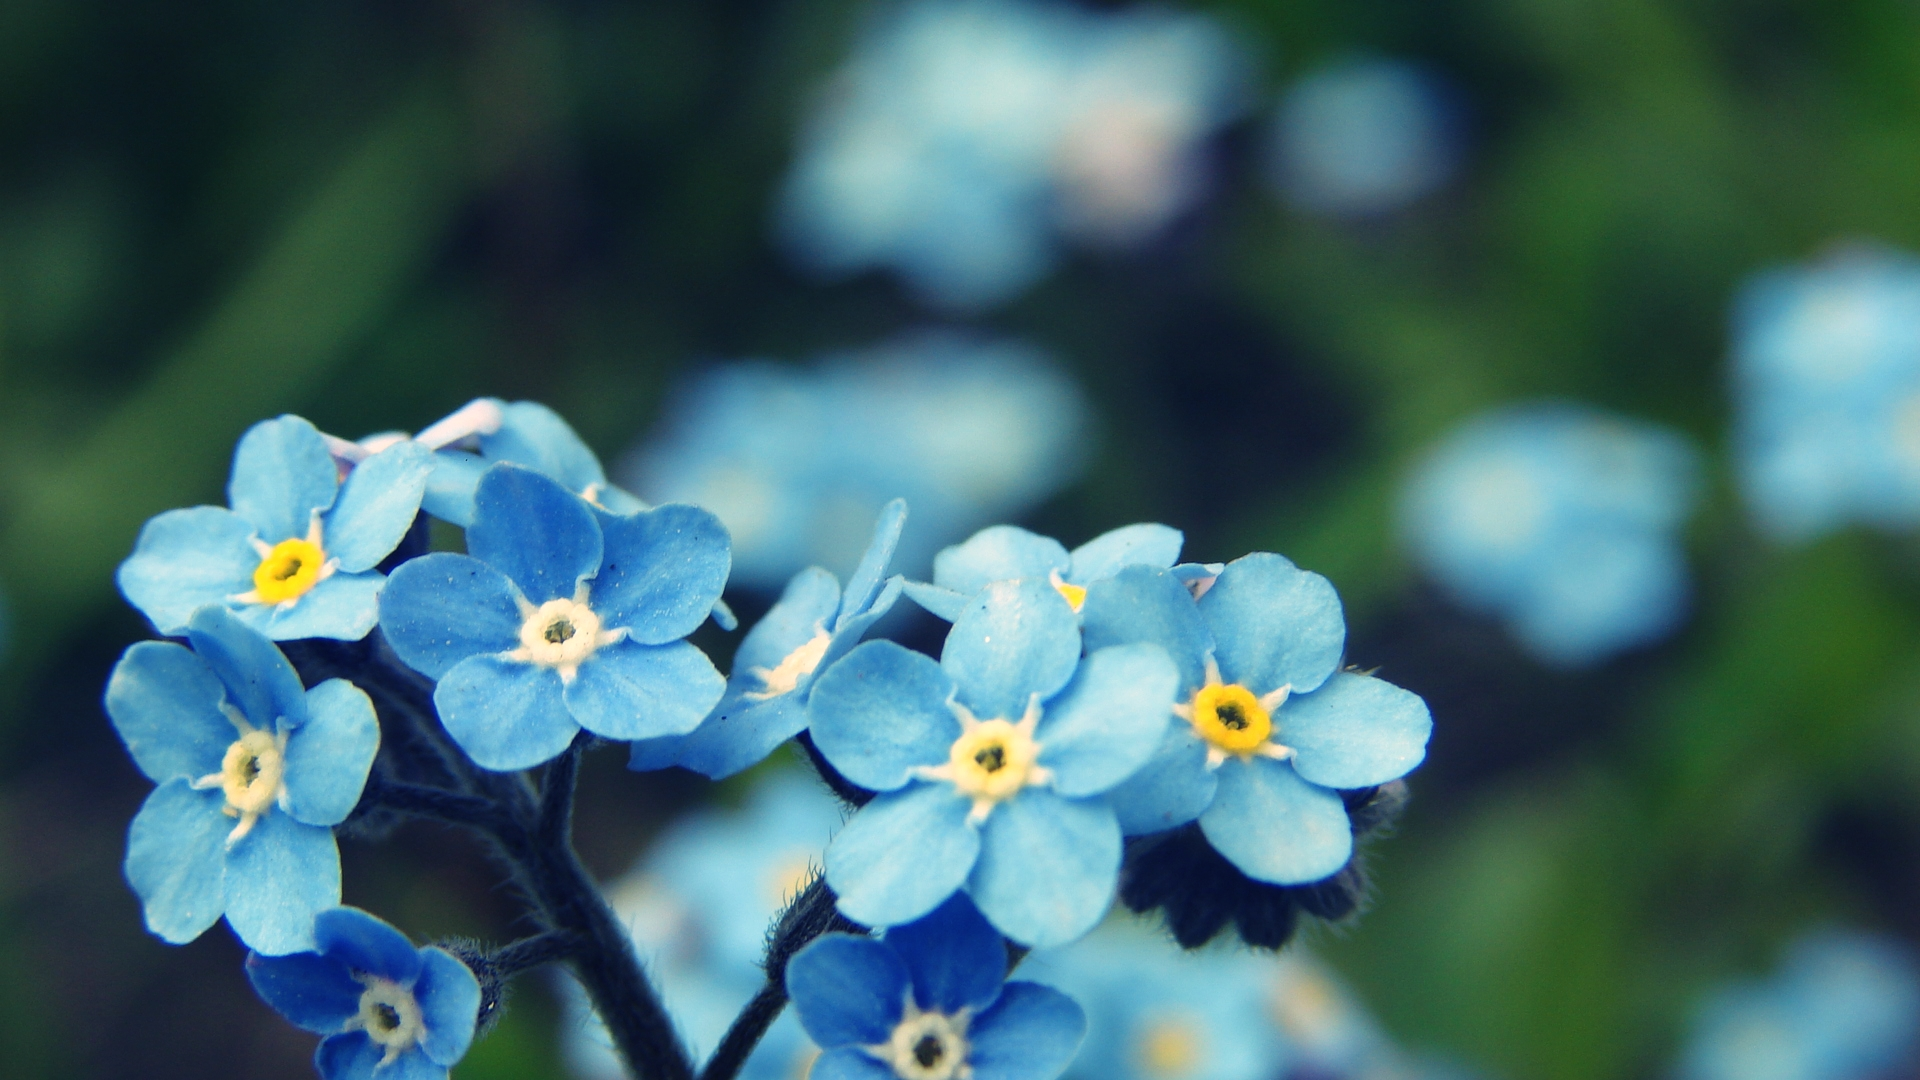 Blue blue blue flowers by turbonisia on DeviantArt